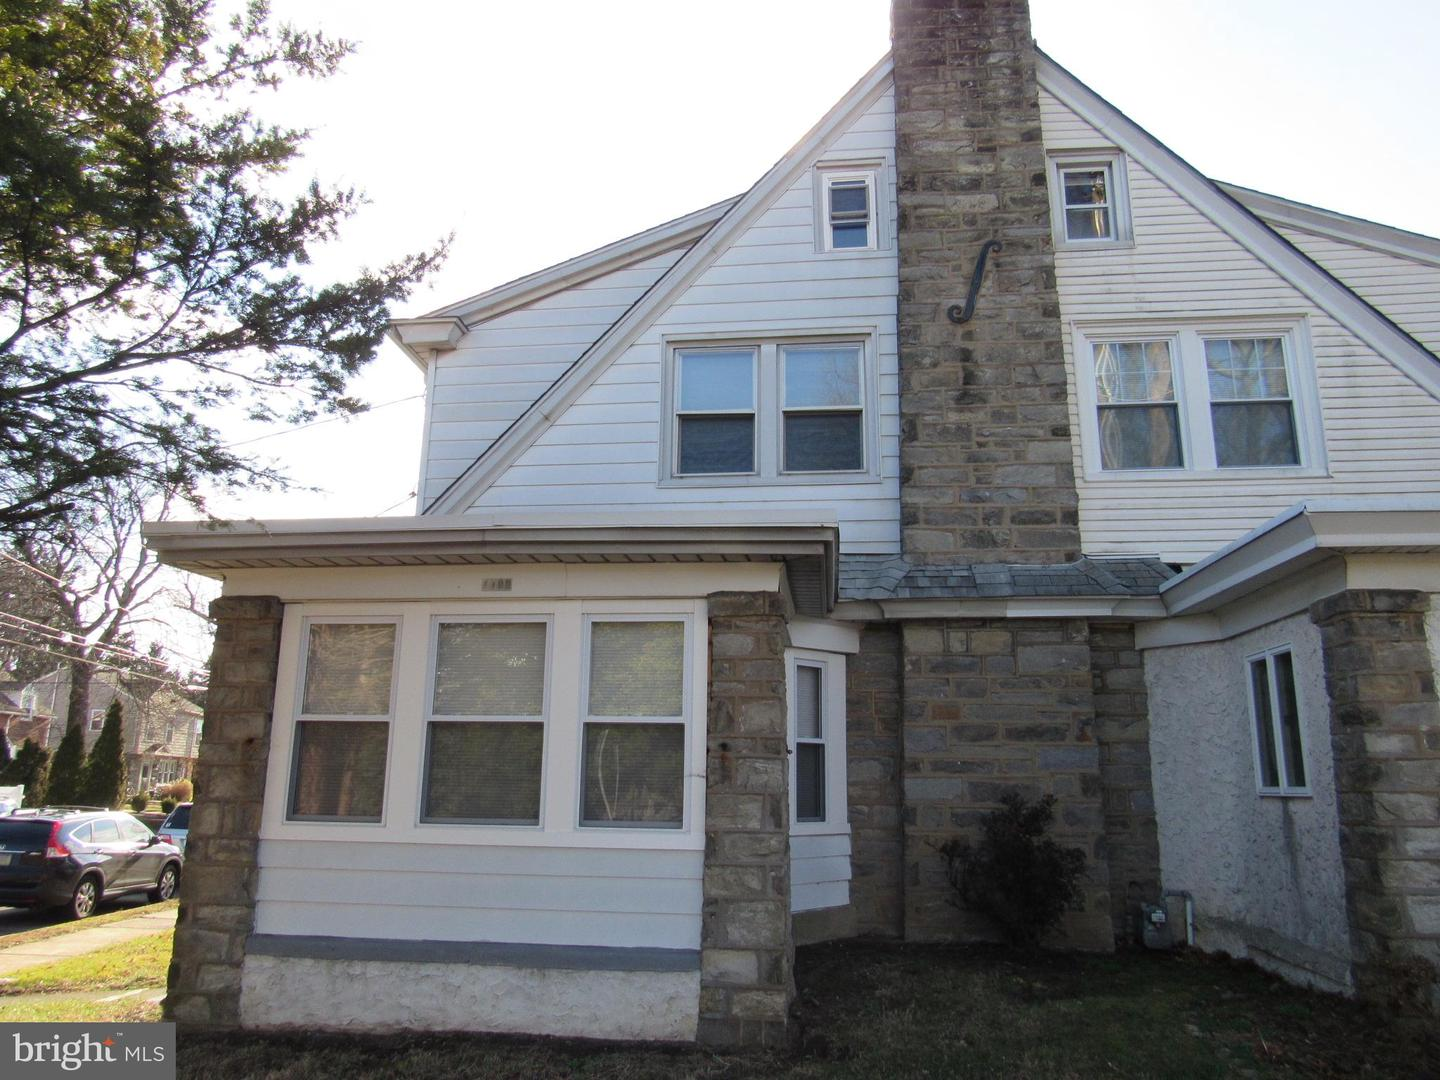 4700 State Road Drexel Hill, PA 19026